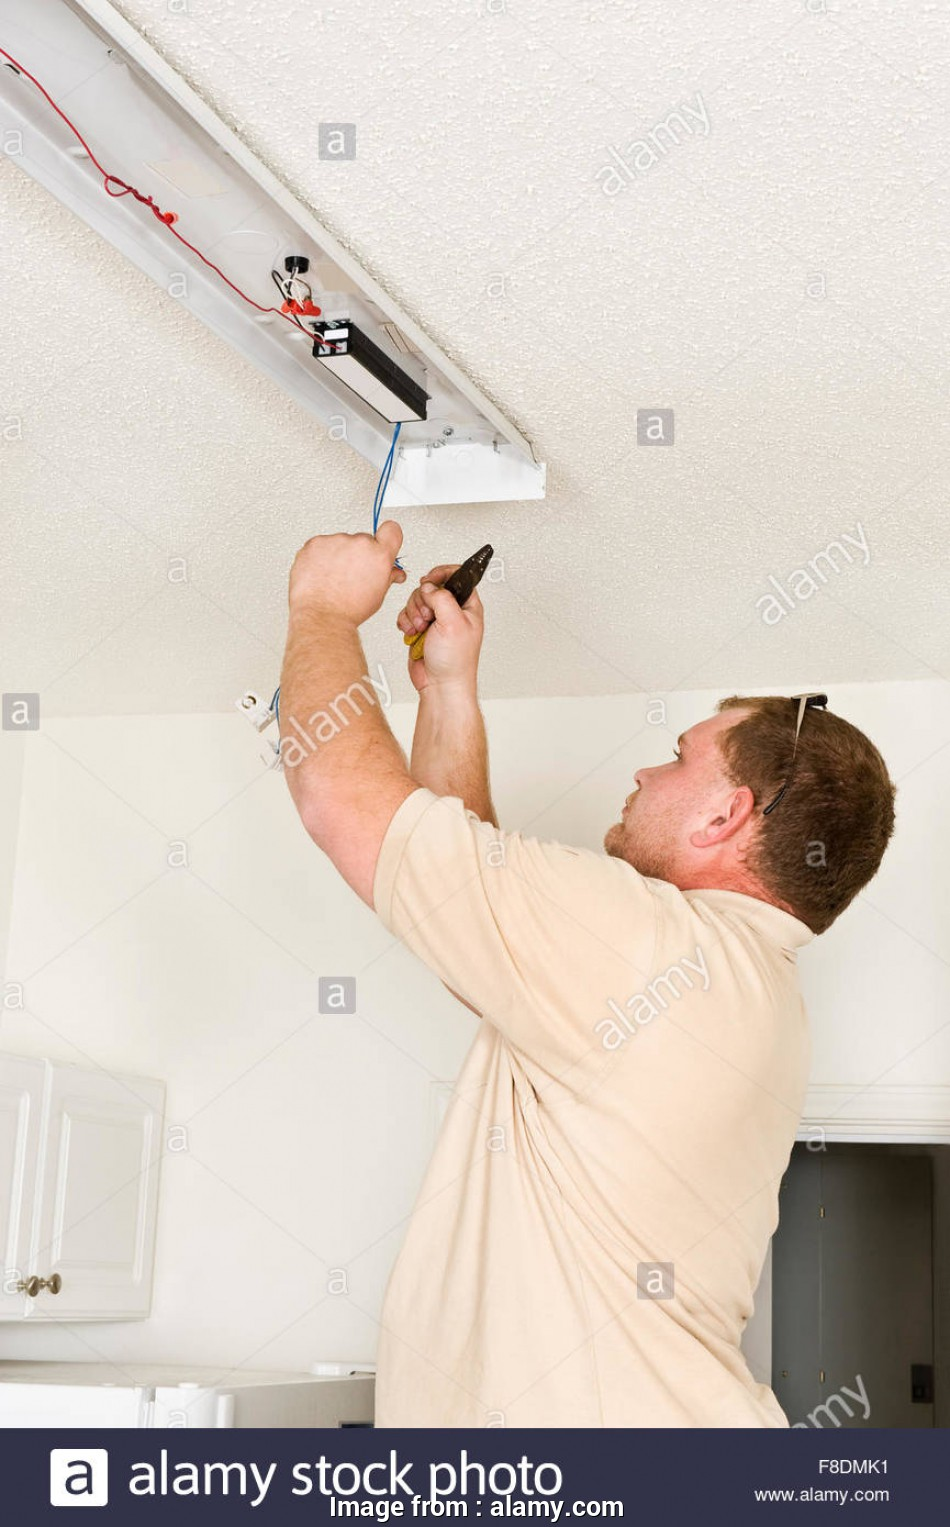 install light fixture electrician A Male Electrician Installing a Fluorescent Lighting Fixture Stock 11 Brilliant Install Light Fixture Electrician Solutions